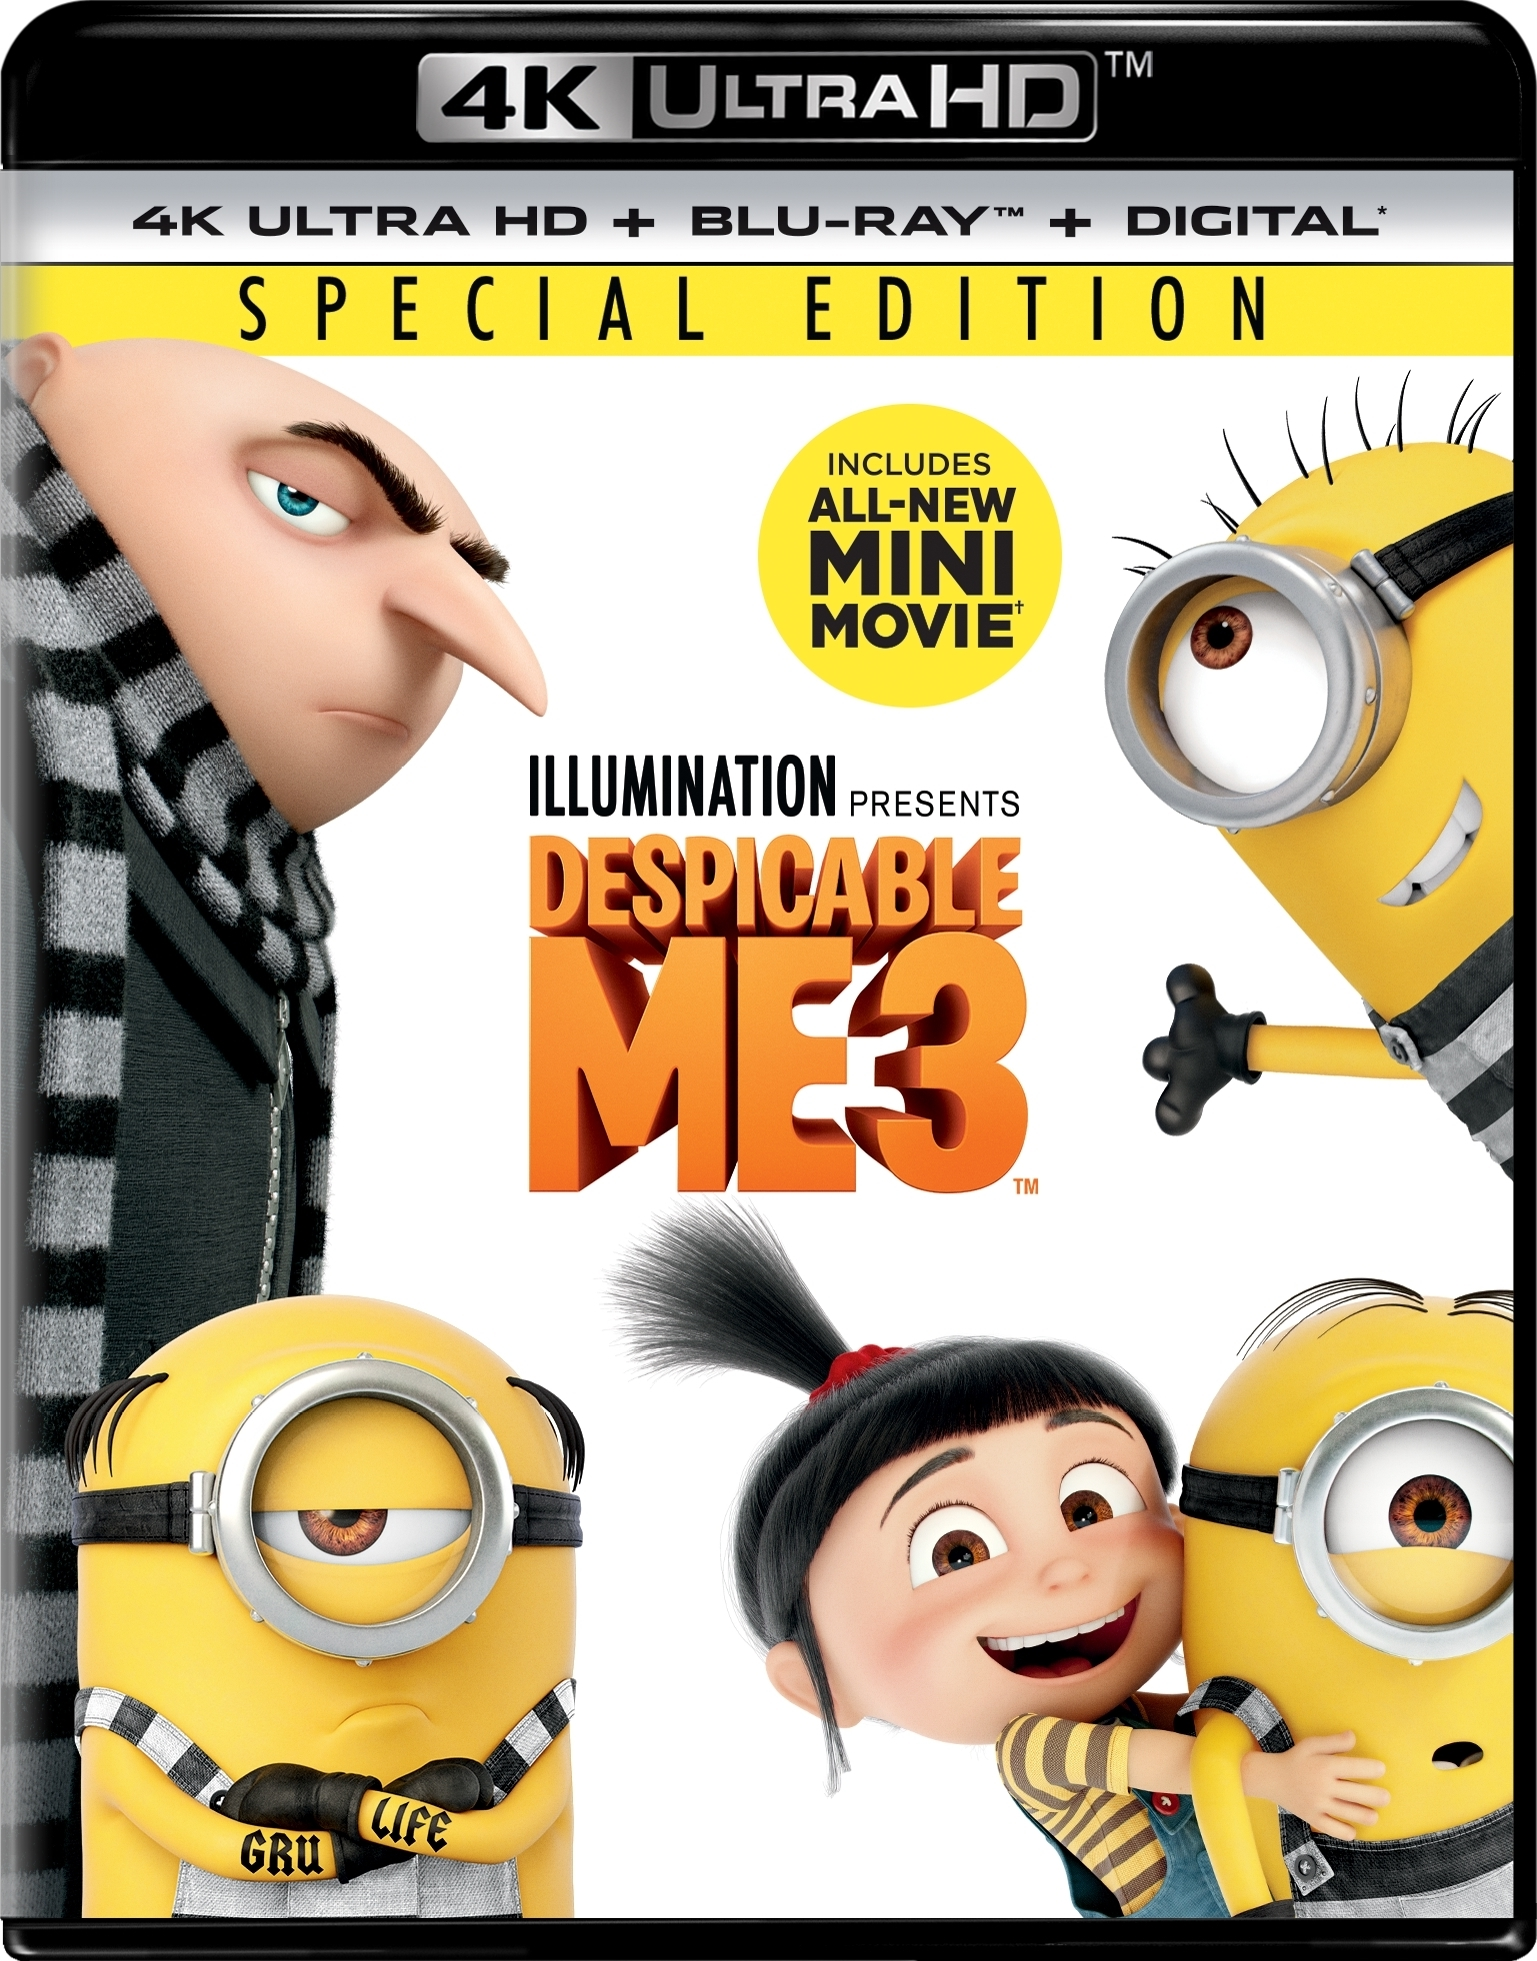 Despicable Me 3 4K (2017) Ultra HD Blu-ray